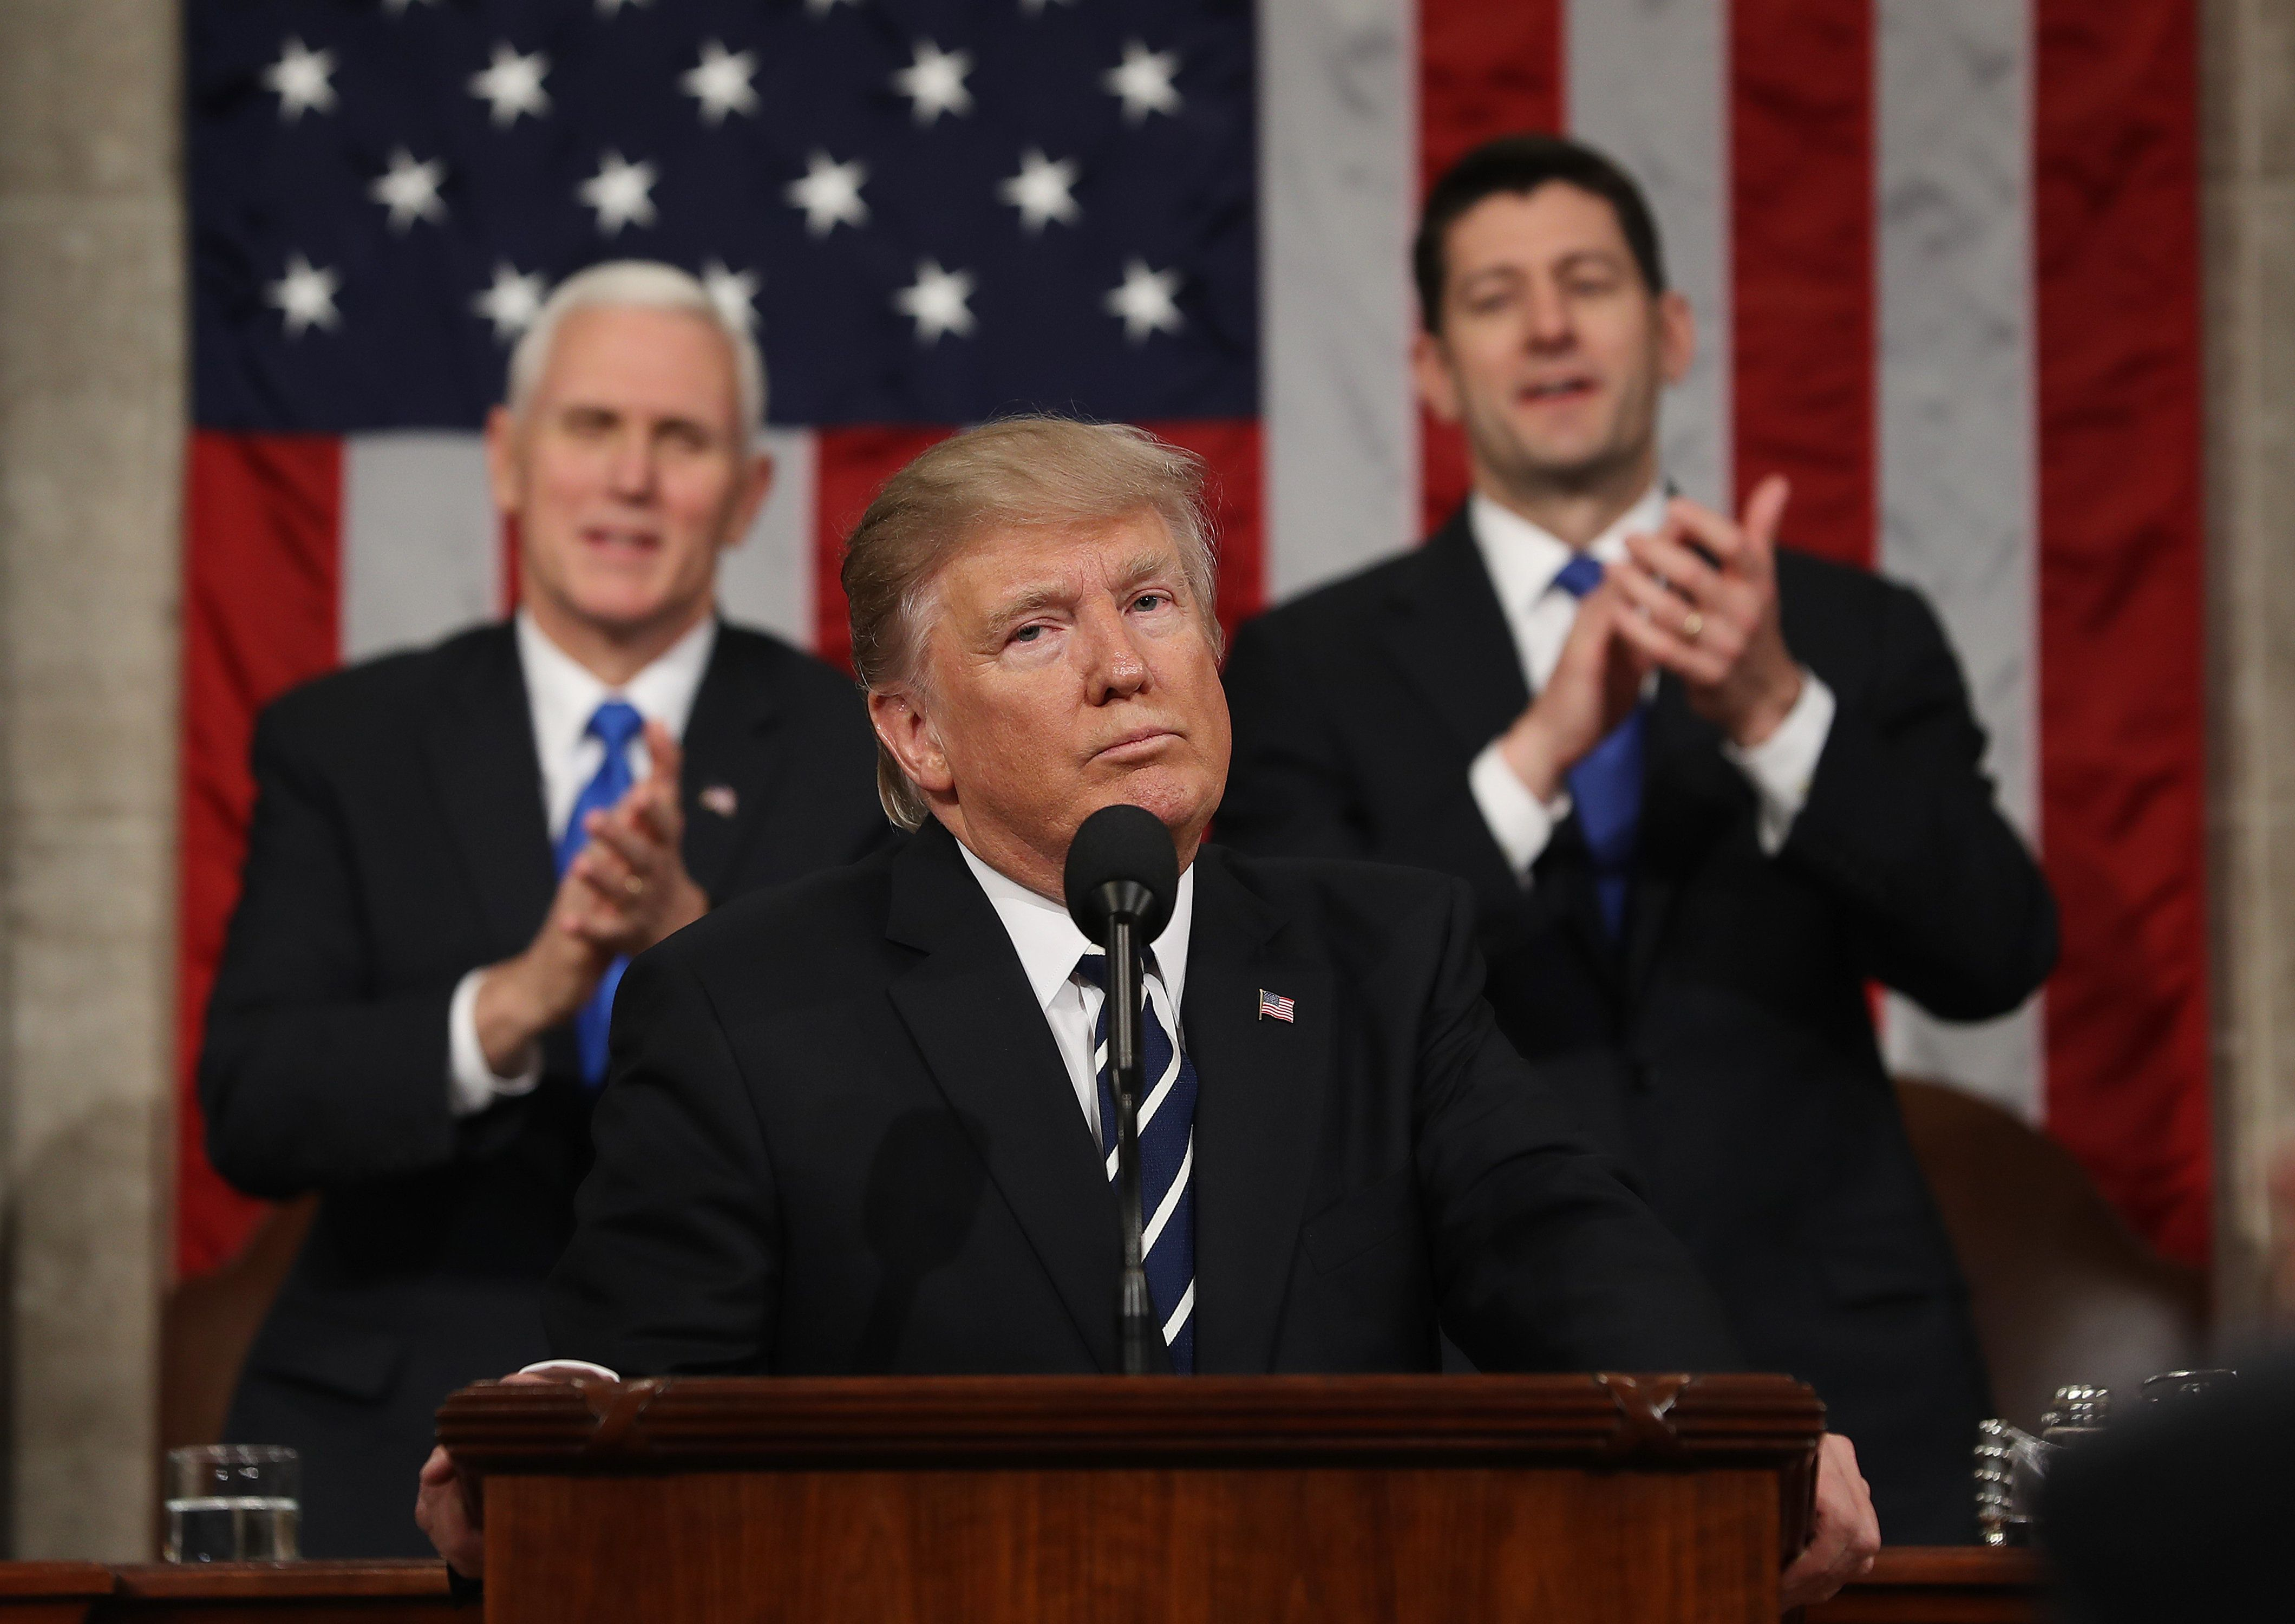 U.S. President Donald Trump, center, pauses as U.S. Vice President Mike Pence, left, and U.S. House Speaker Paul Ryan, a Republican from Wisconsin, applaud during a joint session of Congress in Washington, D.C., U.S., on Tuesday, Feb. 28, 2017. Trump will press Congress to carry out his priorities for replacing Obamacare, jump-starting the economy and bolstering the nation's defenses in an address eagerly awaited by lawmakers, investors and the public who want greater clarity on his policy agenda. Photographer: Jim Lo Scalzo/Pool via Bloomberg